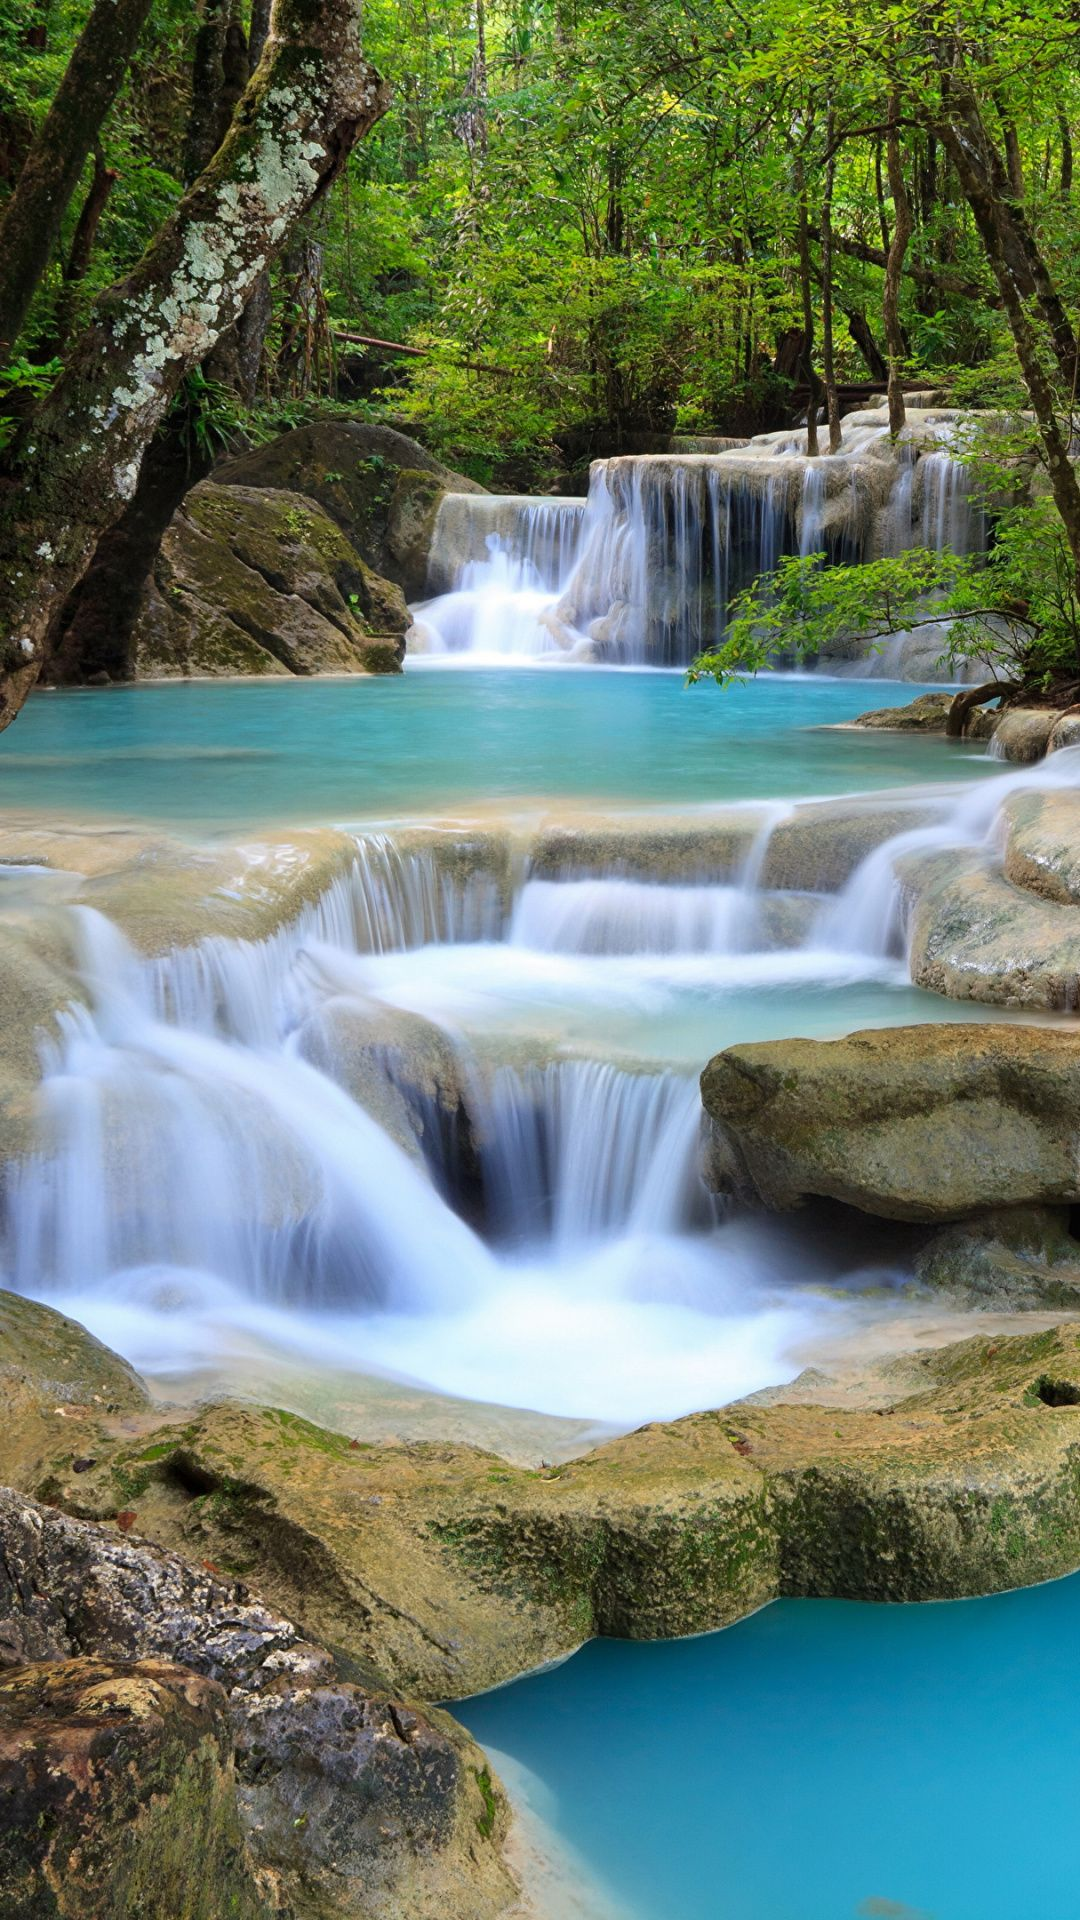 Zion National Park Erawan Waterfall Nature Reserve Water Resources